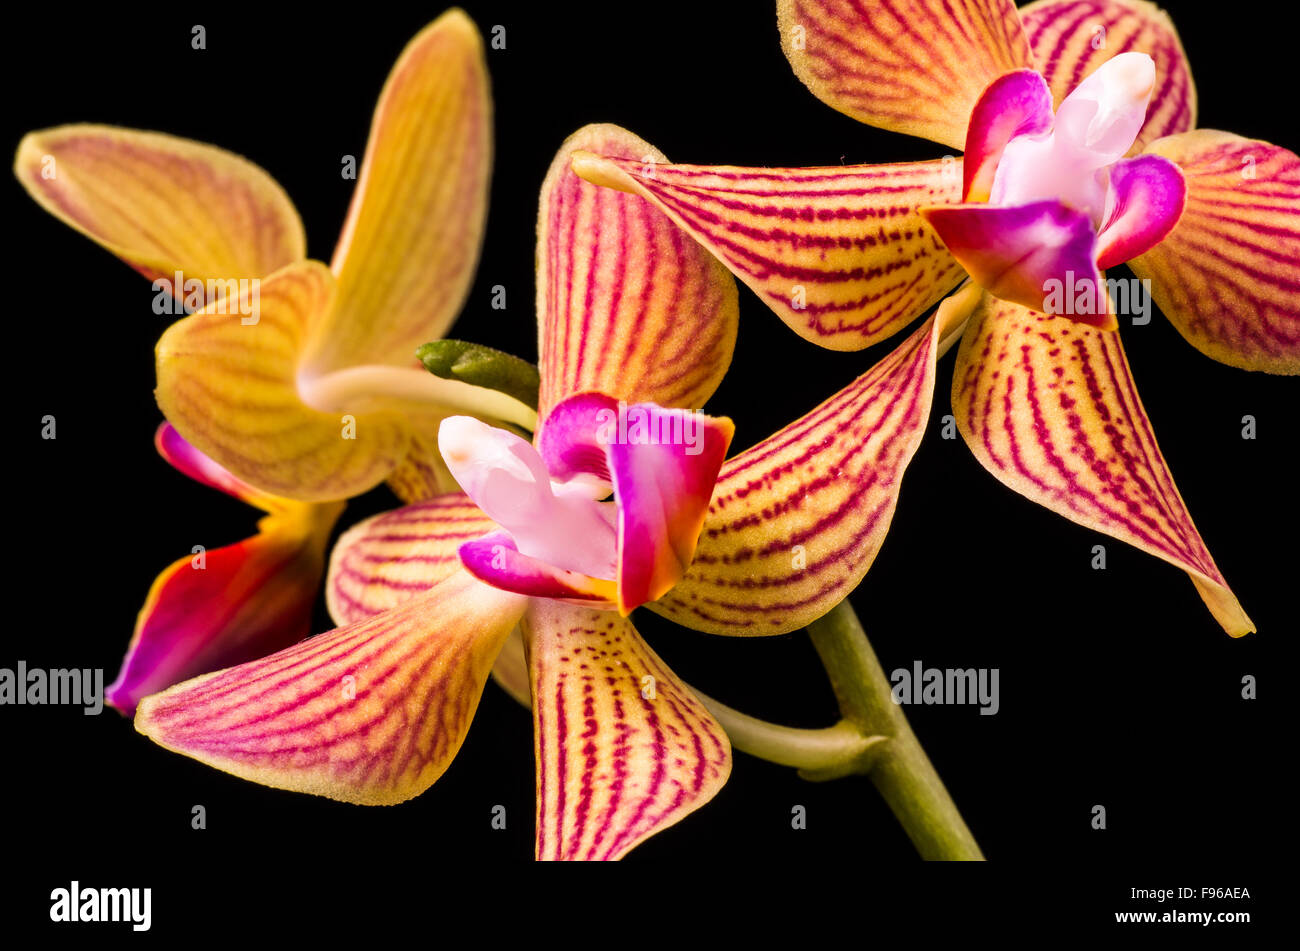 Close up of Orchid flowers, Orchidaceae, with a black background. Black and white image. - Stock Image